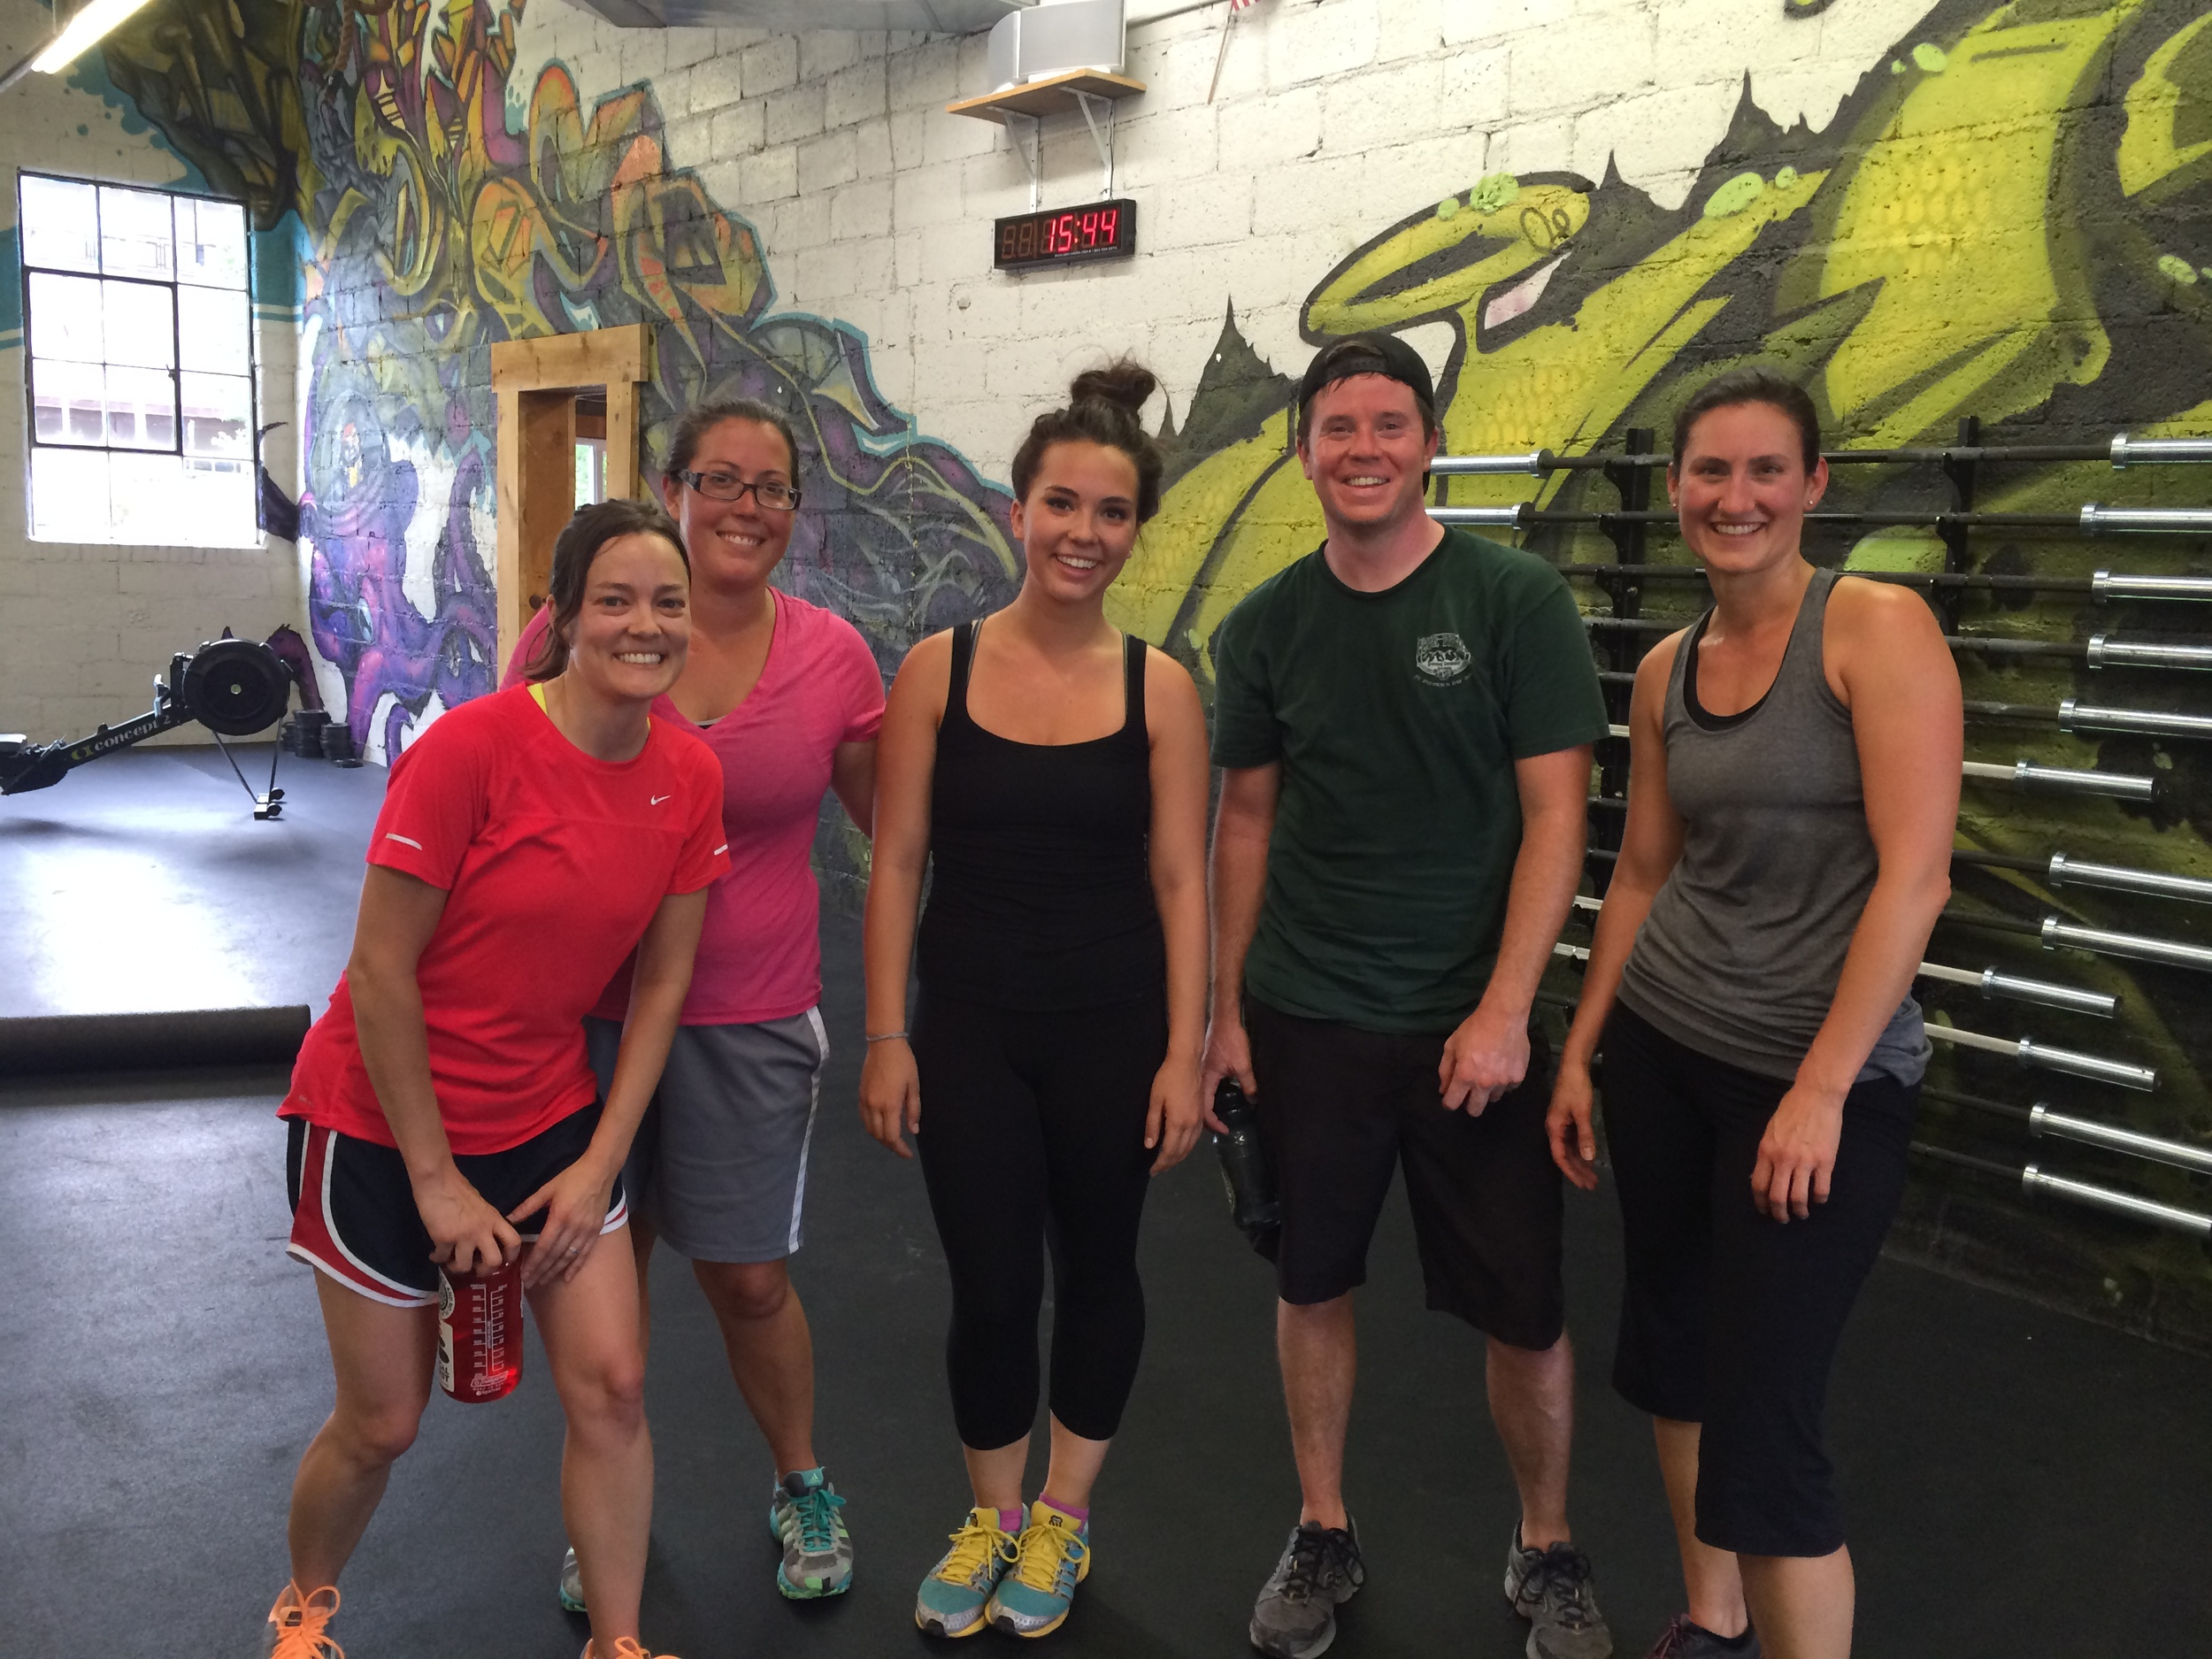 Amy, Dianne, Sophie, Matt, and Rosaleen just finished Starting LIne and are all hitting regular WODs these days. Make sure you introduce yourself when you see them in class.